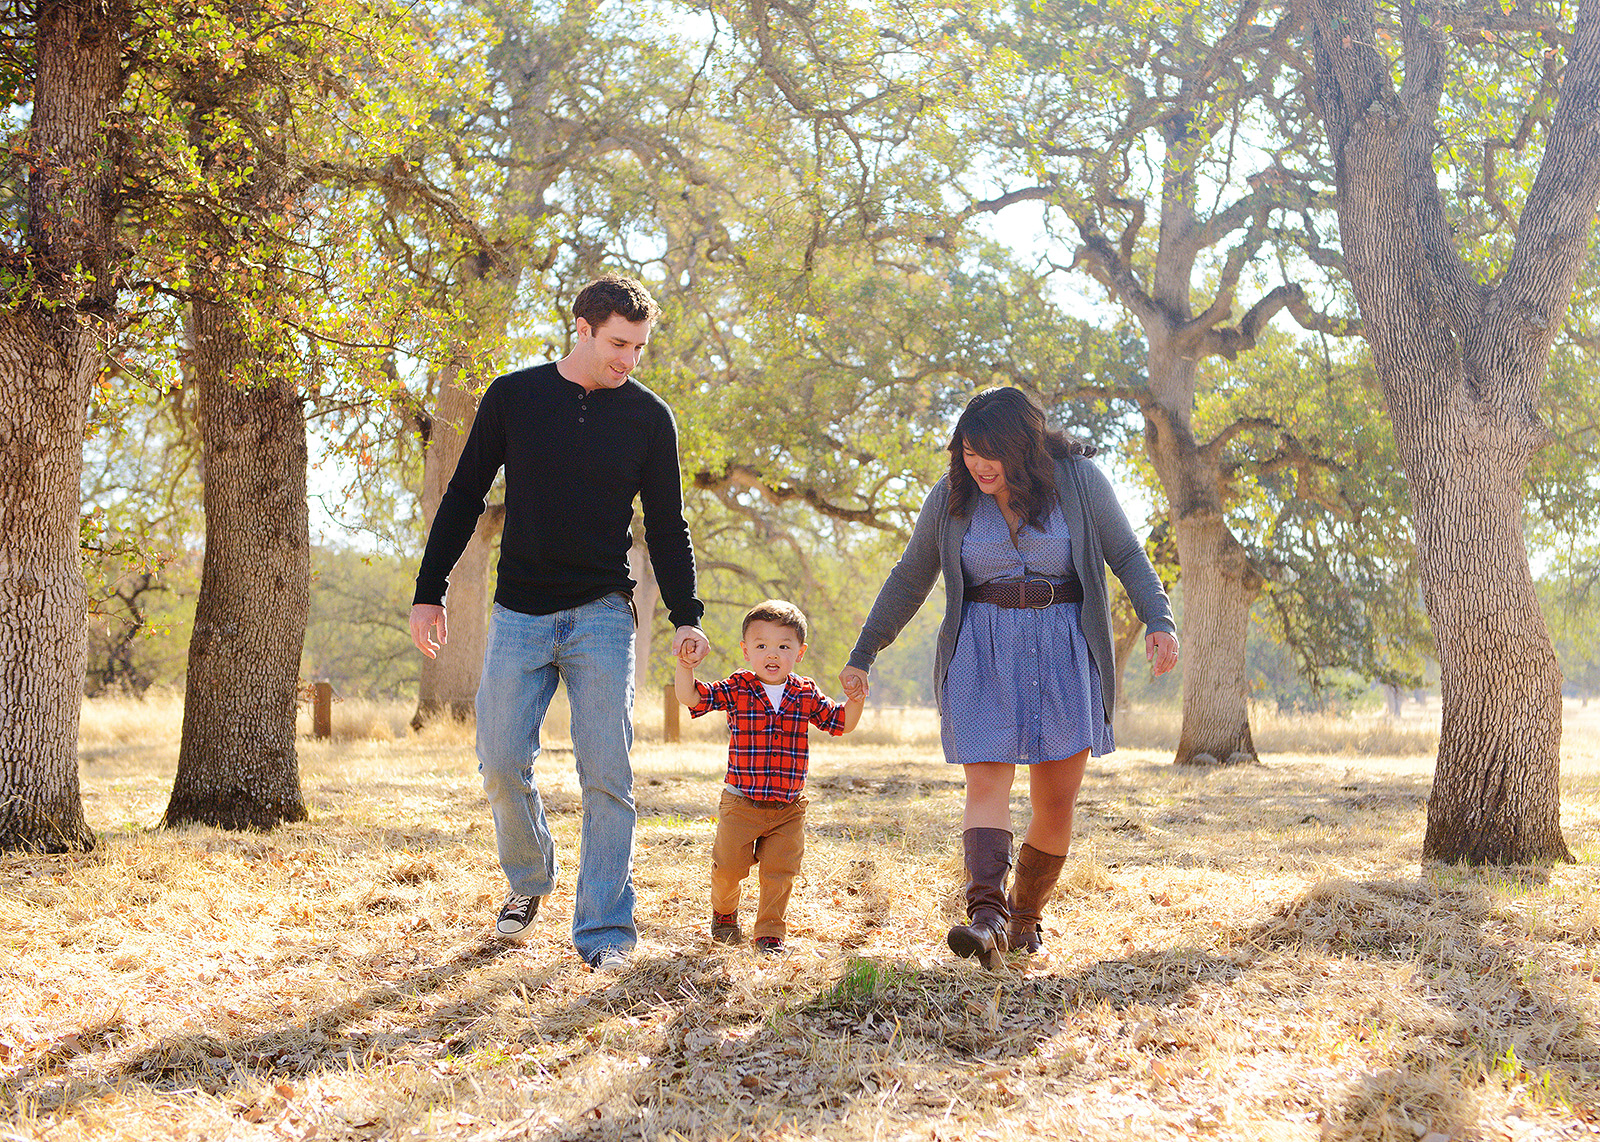 fair oaks family portraits in golden grass for fall pictures with photographer jill carmel